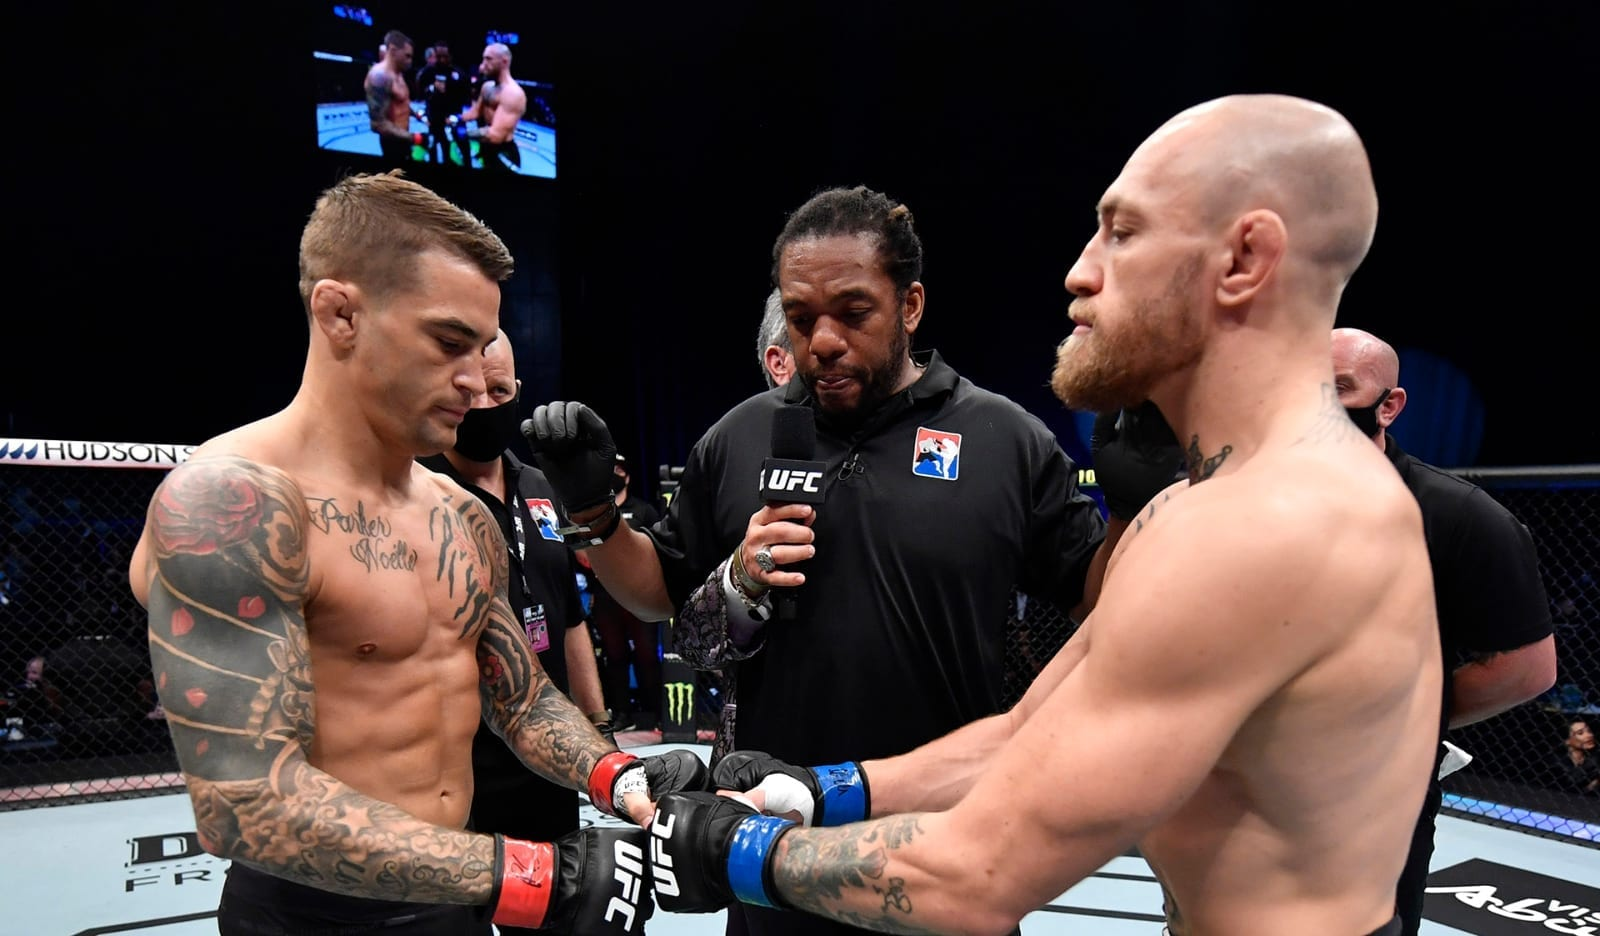 Dan Hardy predicts Conor McGregor's ability to find 'technical solutions to problems' will see him win Poirier trilogy bout thumbnail